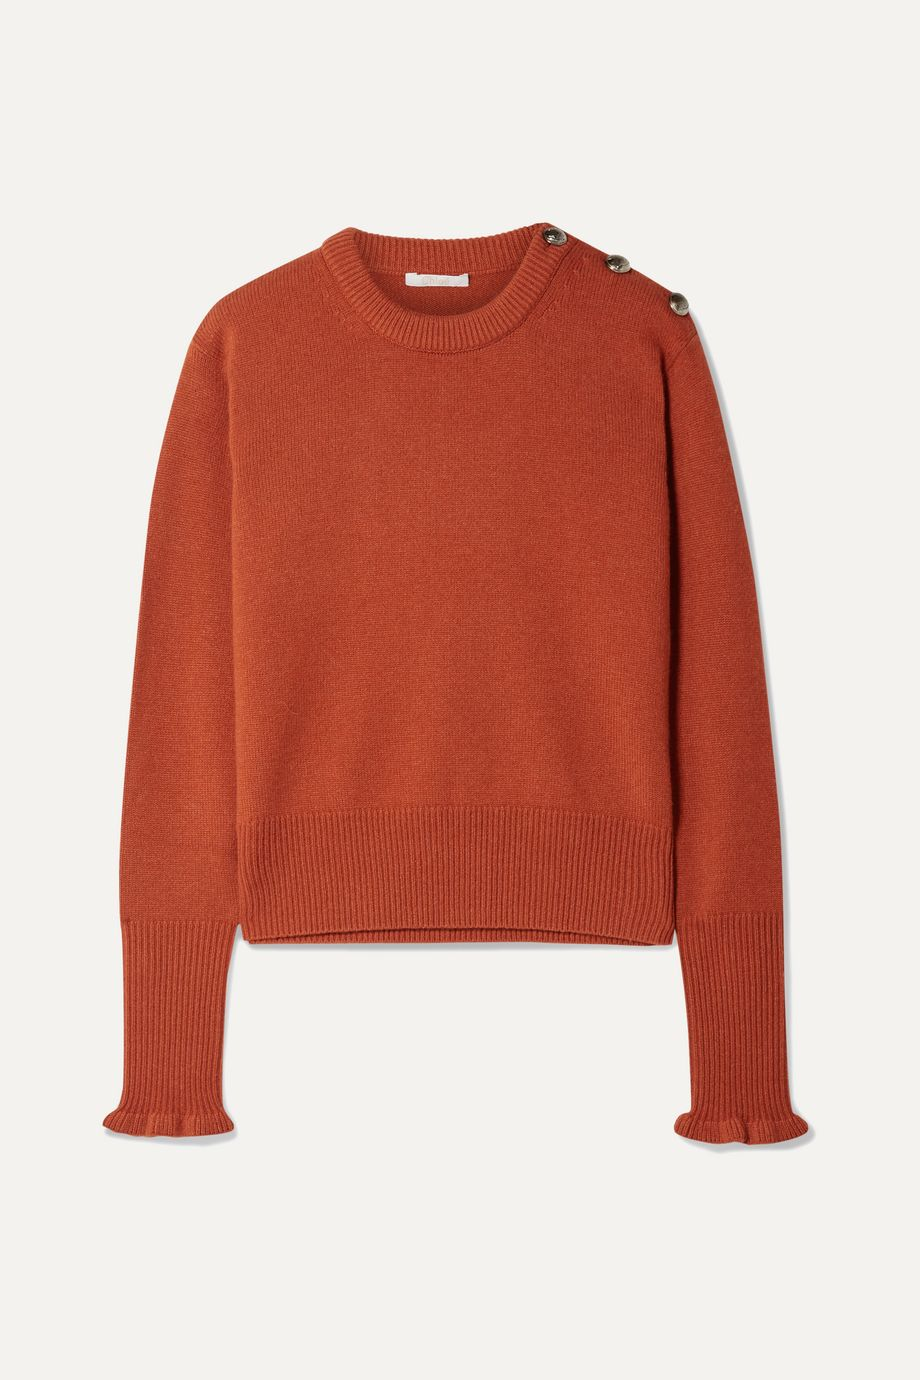 Chloé Button-detailed cashmere sweater